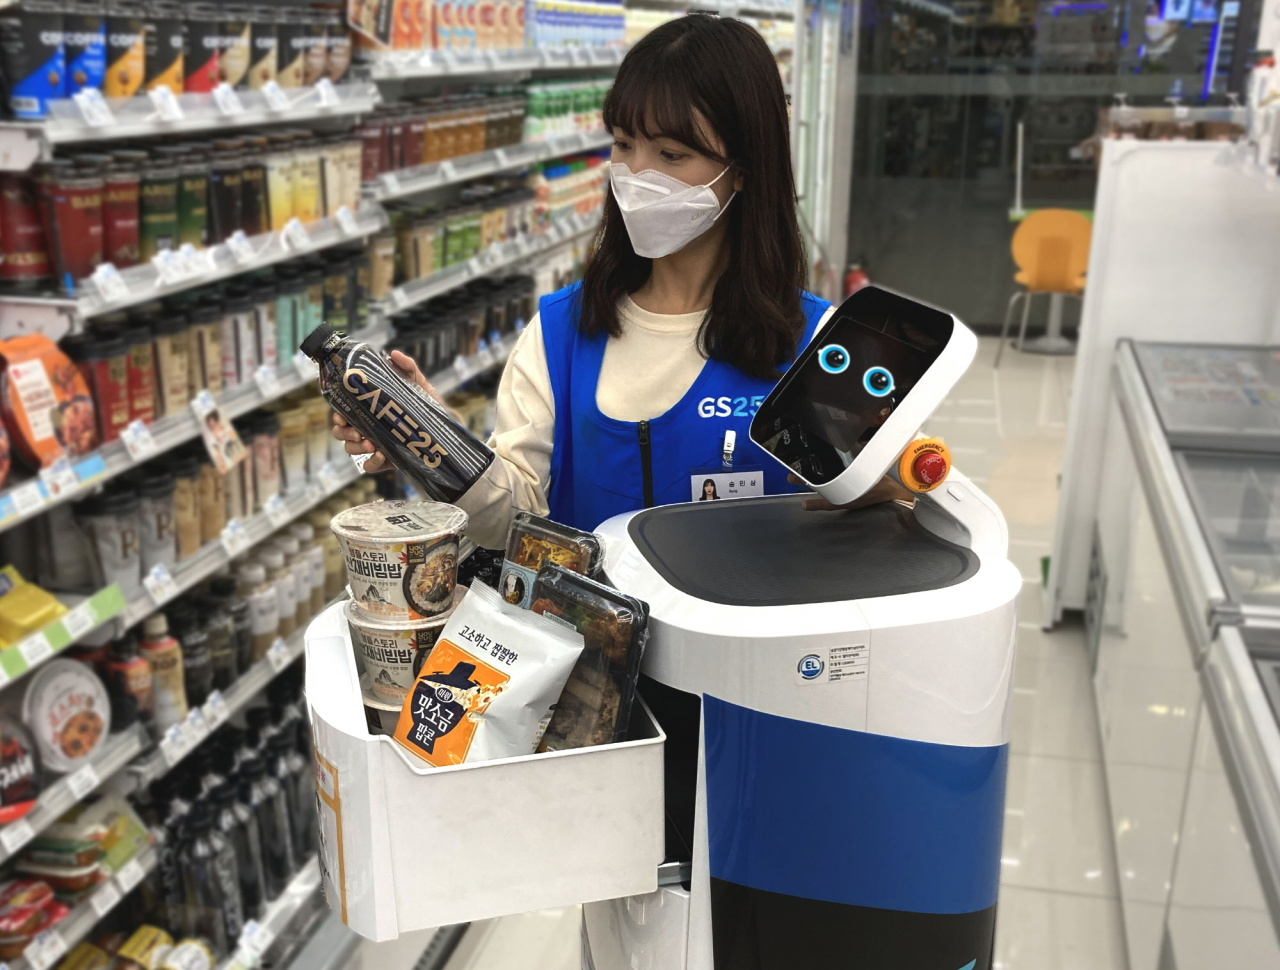 A GS25 convenience store employee moves items to a helper robot developed by LG Electronics.